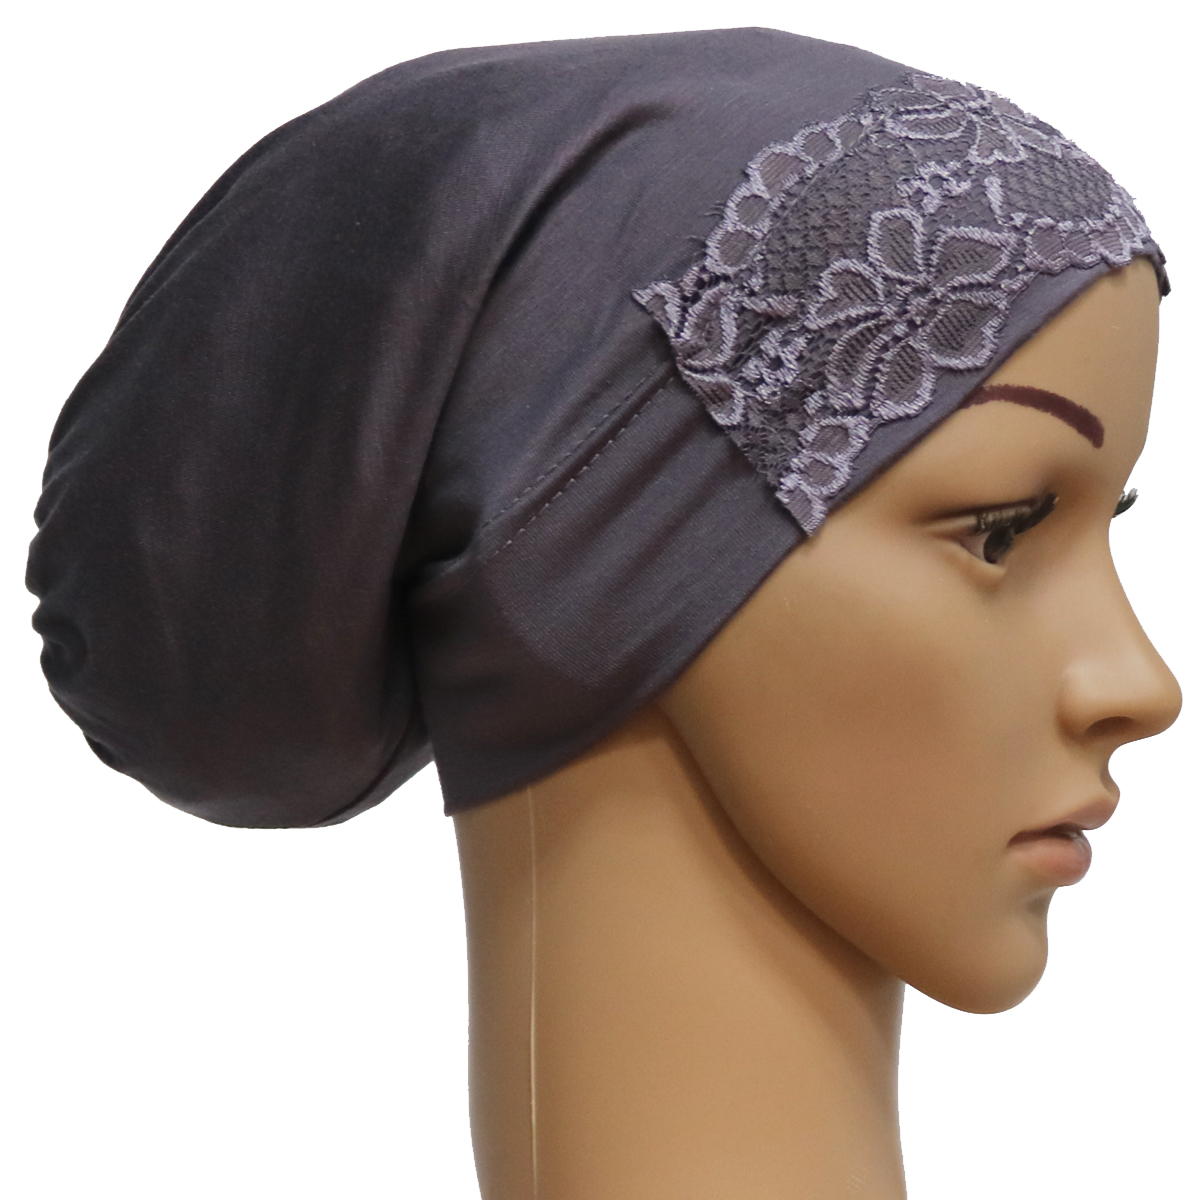 Cheap Sale Women Islamic Hijab Cap Scarf Tube Bonnet Hair Wrap Colorful Head Band A Great Variety Of Models Islamic Clothing